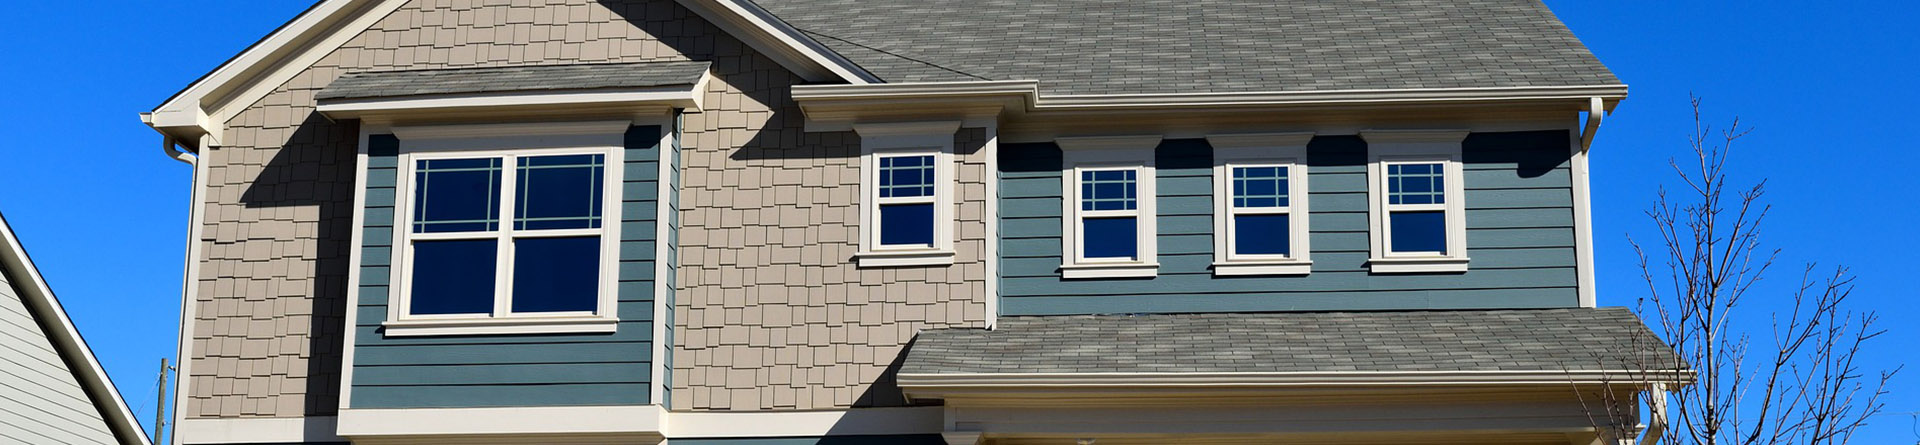 Siding & Window Contractors